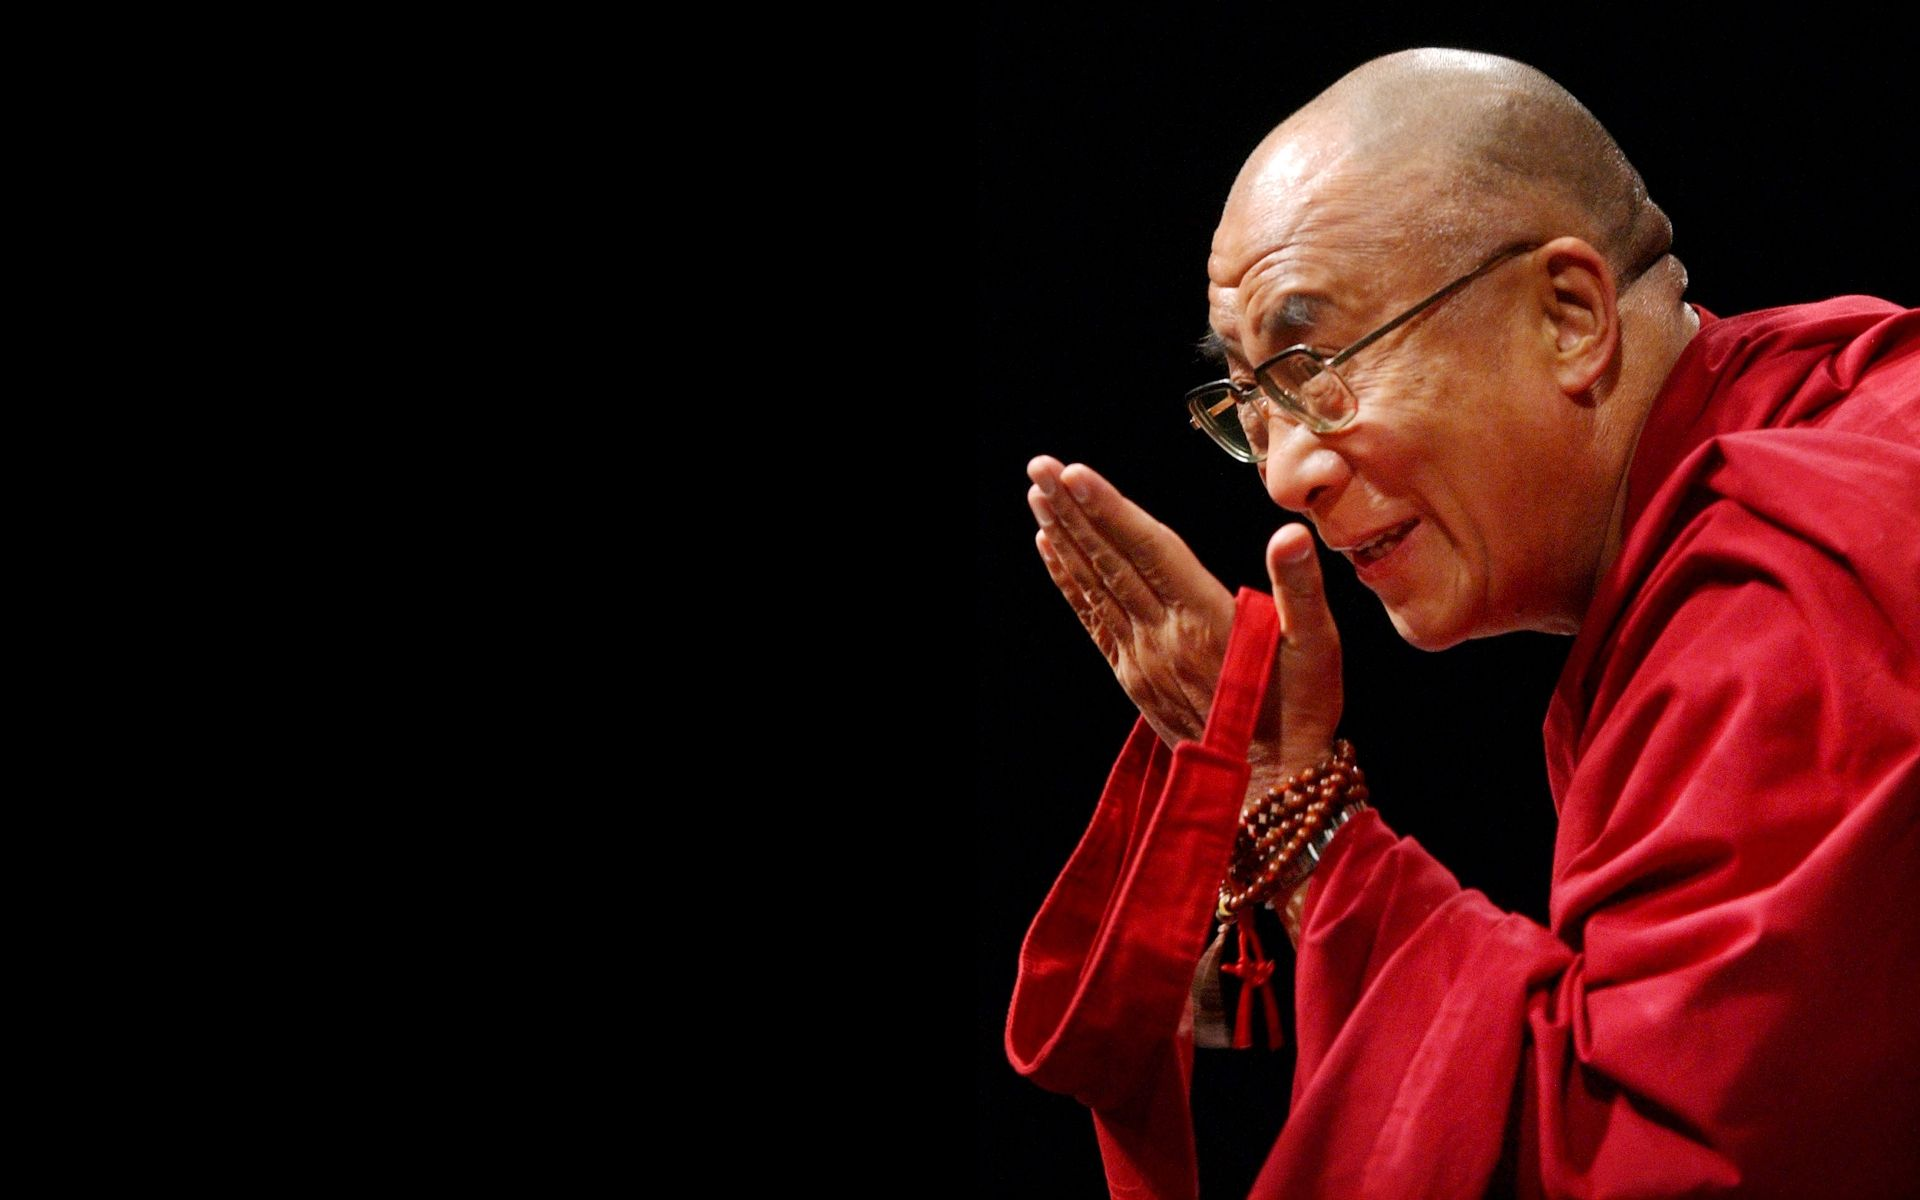 Top 110 Dalai Lama Quotes On Life, Happiness And Love